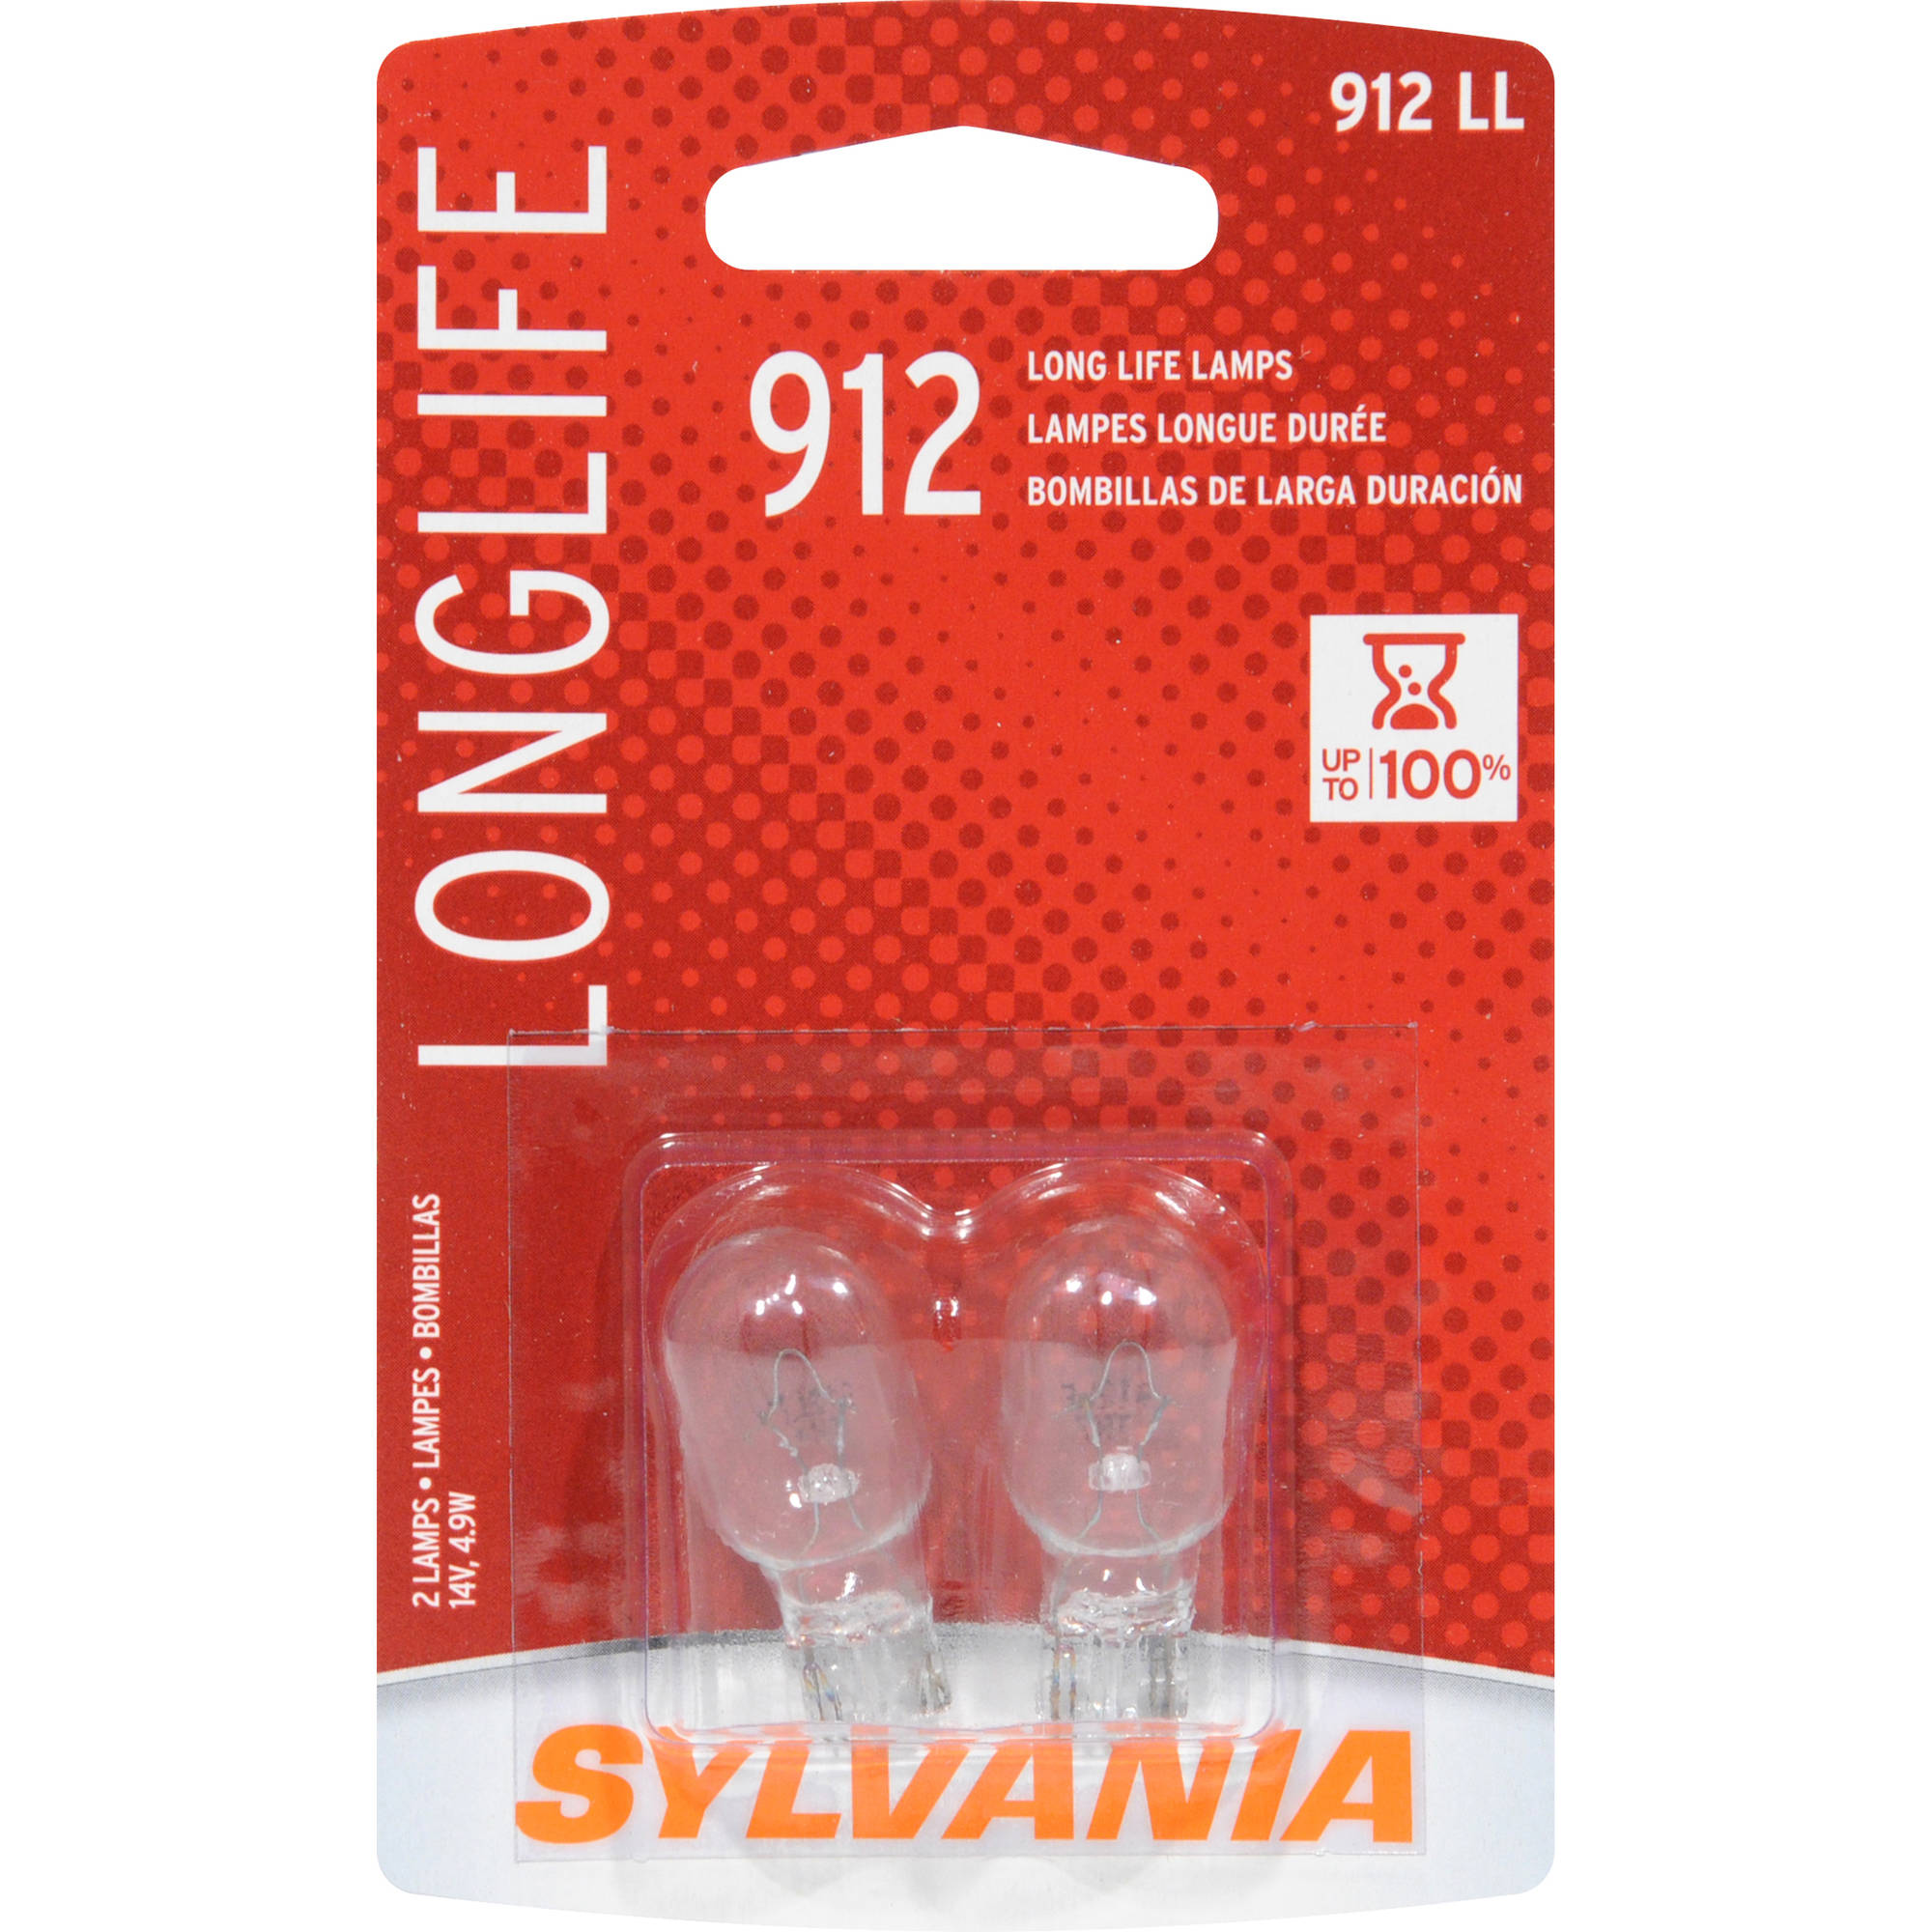 Sylvania 912 Long-Life Miniature Bulb, Twin Pack